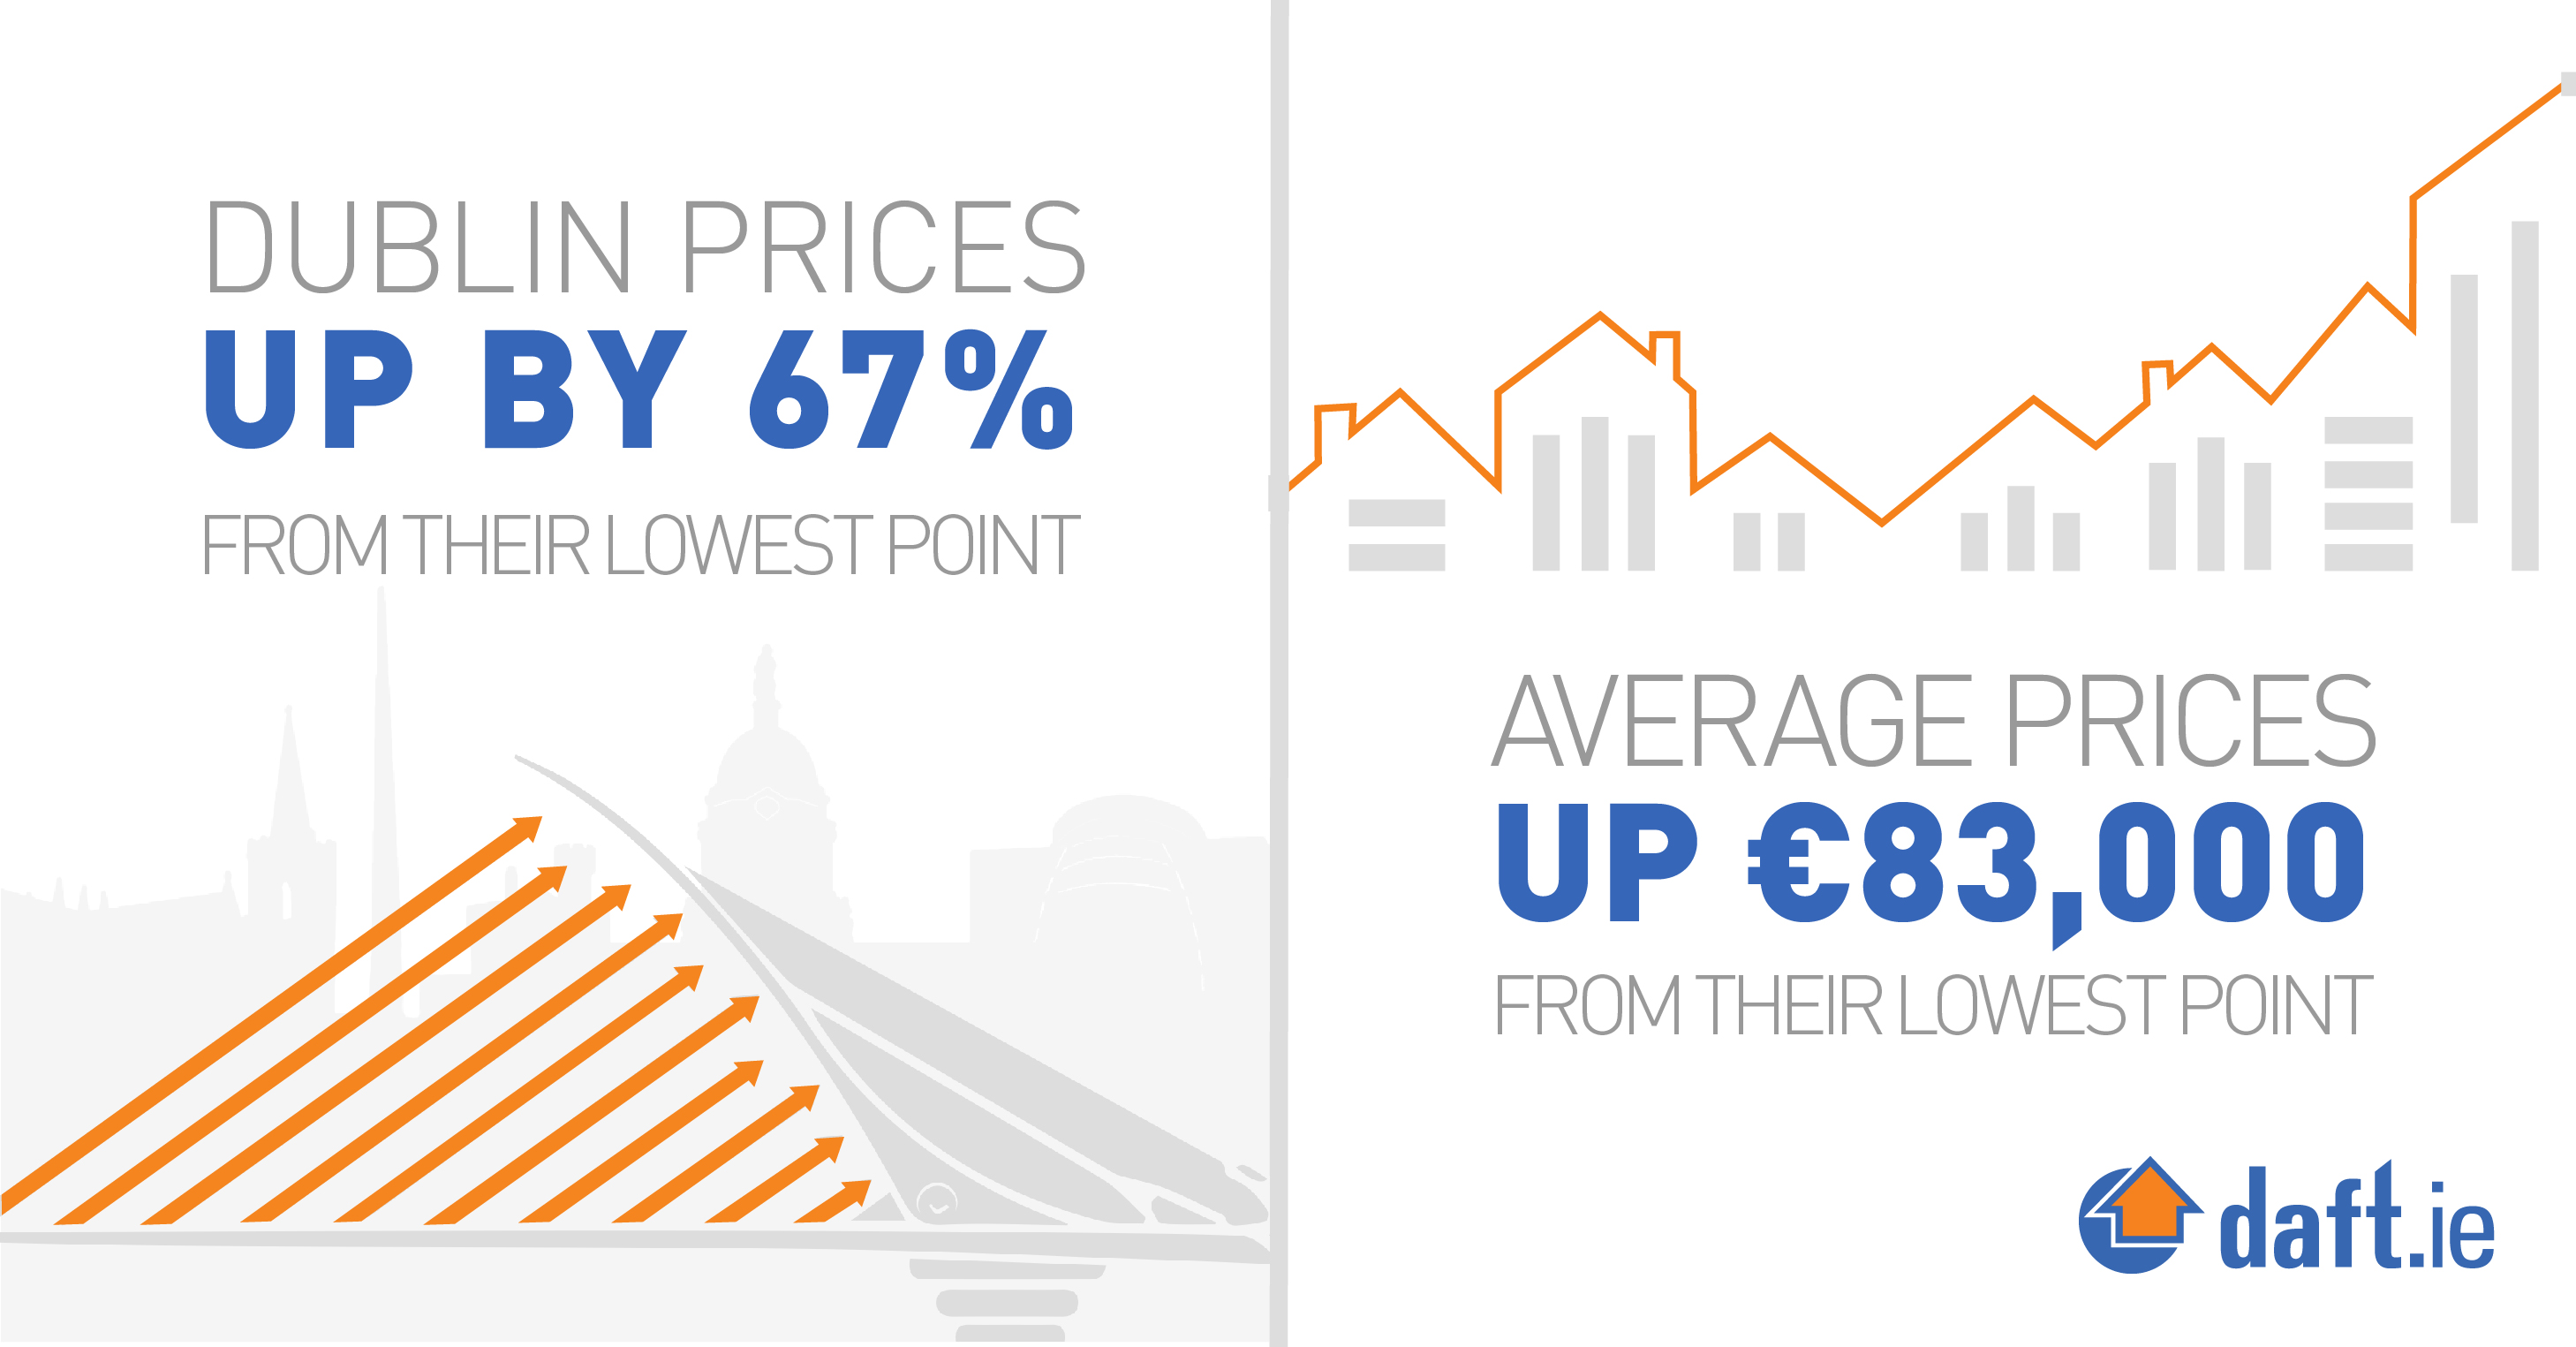 Dublin prices and average prices